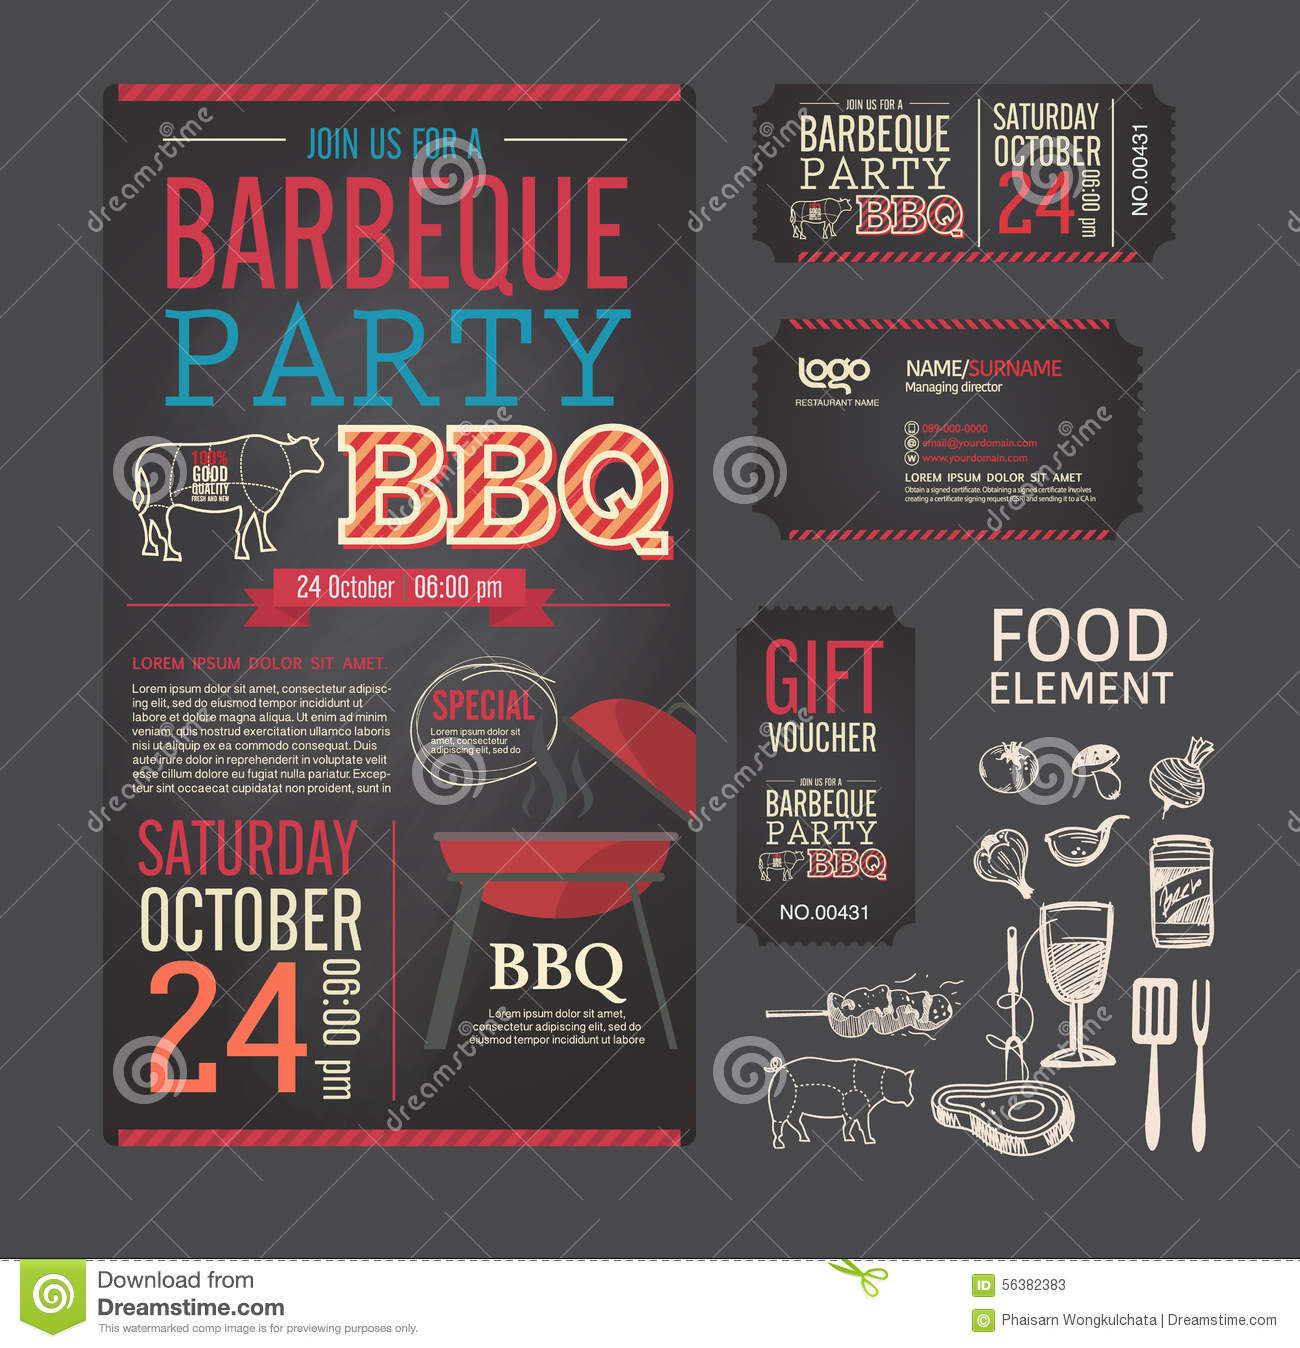 barbecue party bbq template menu design set stock vector image 56382383. Black Bedroom Furniture Sets. Home Design Ideas